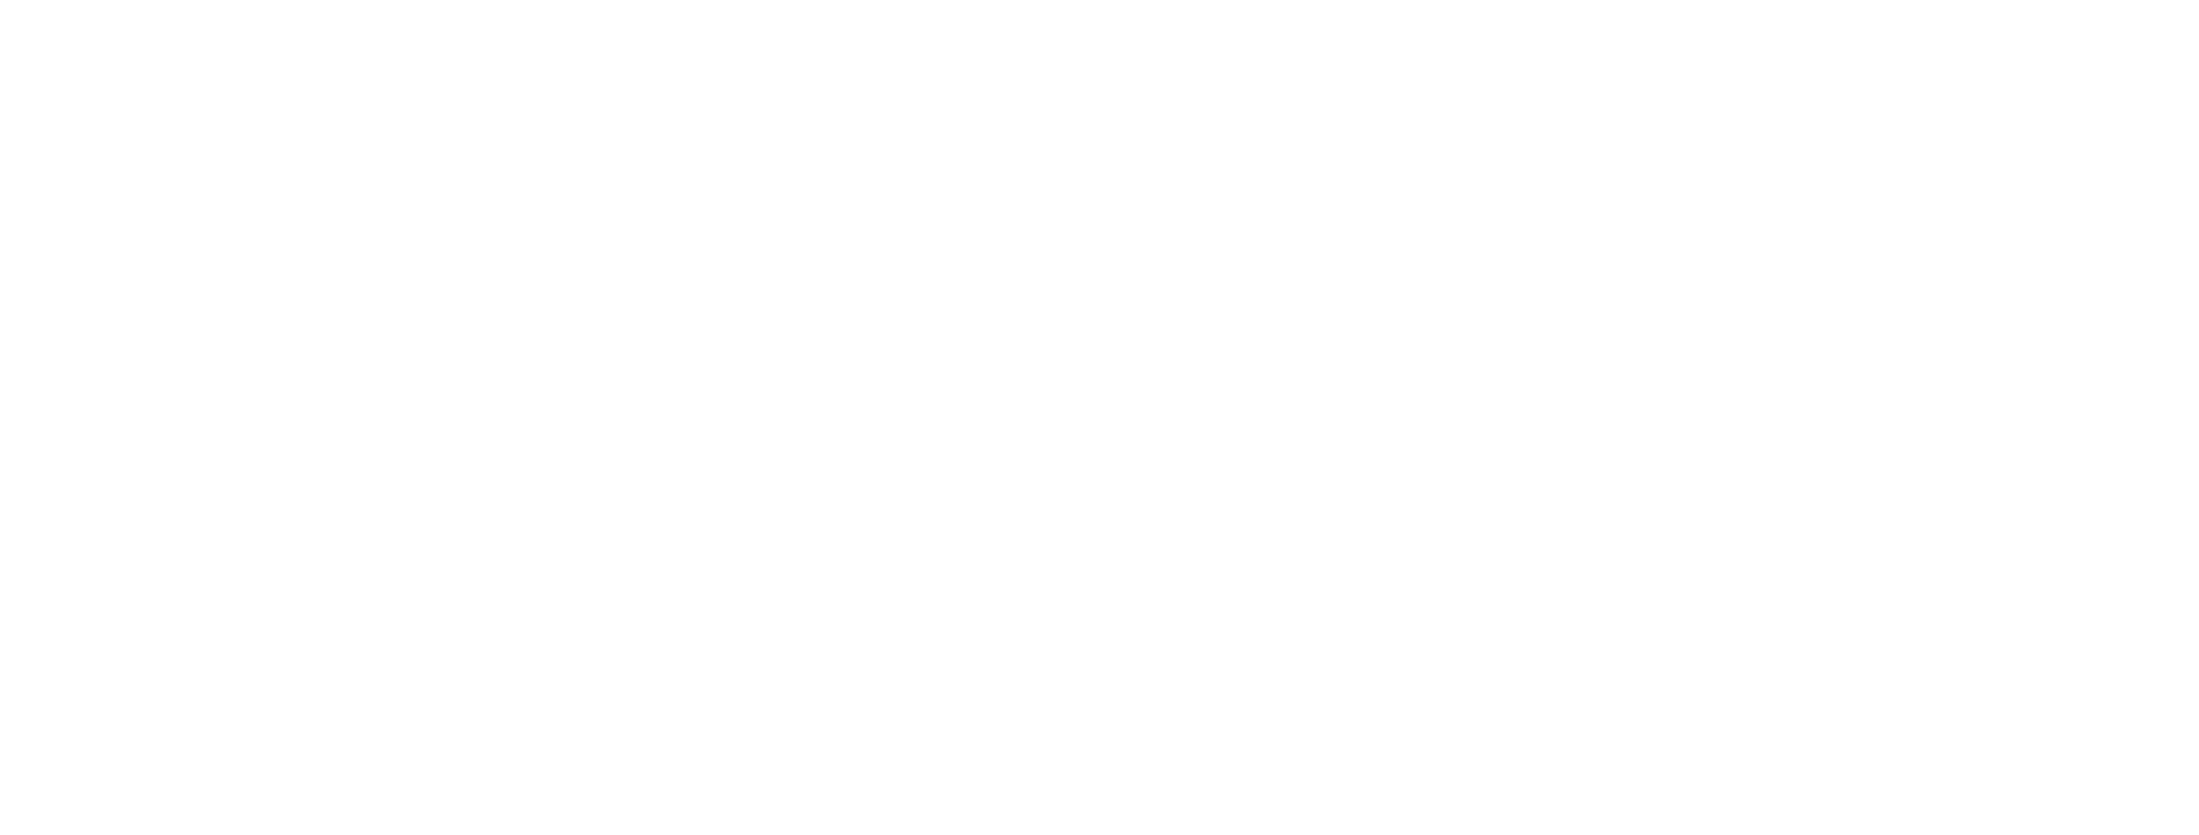 About The Owner - Lynn Mathison